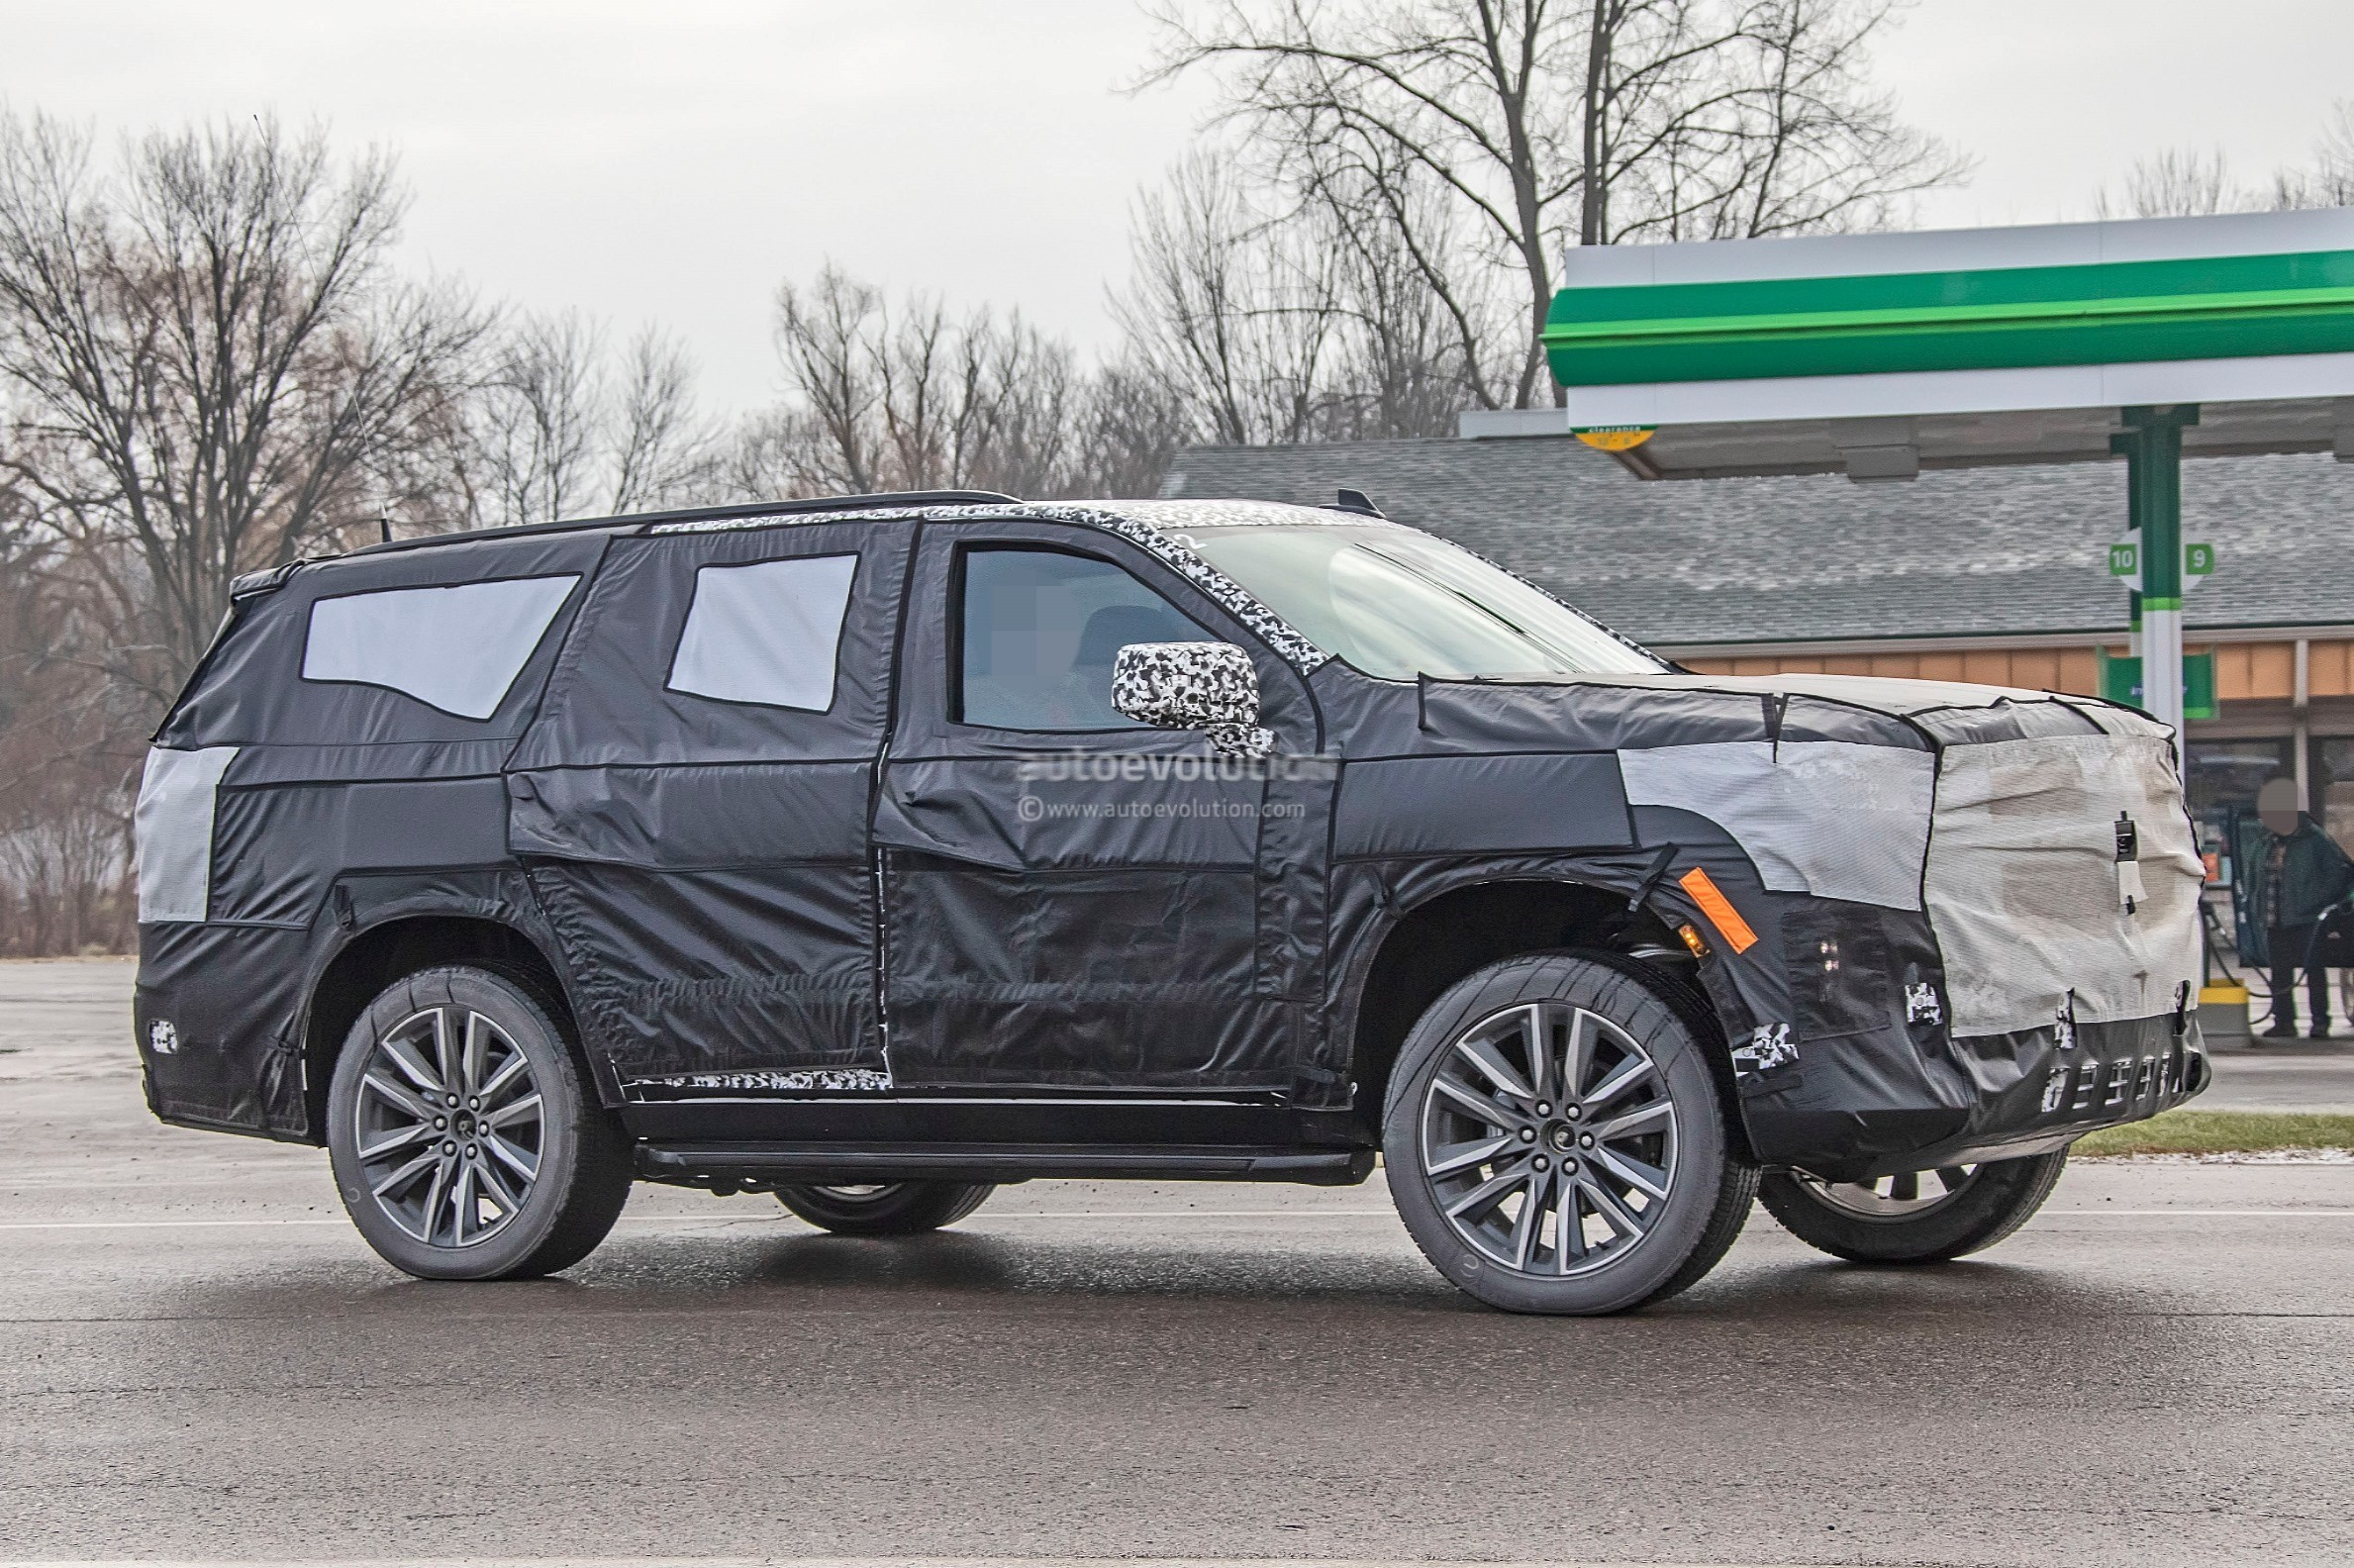 2021 cadillac escalade rendered with ct6 front  xt6 rear